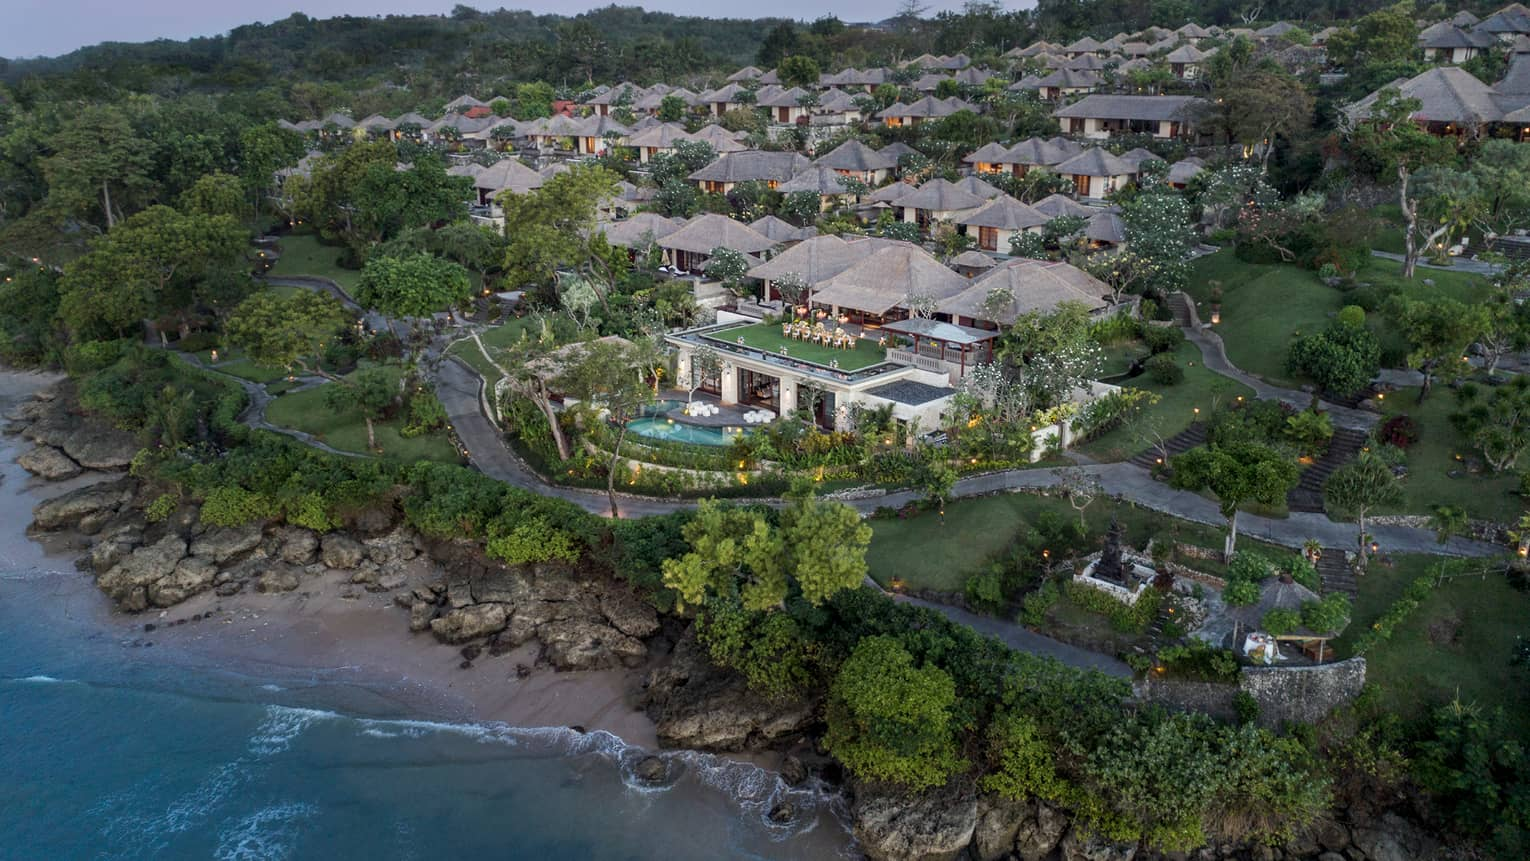 Aerial view of Bali at Jimbaran Bay resort and villas at sunset, overlooking rocks, sand beach and ocean